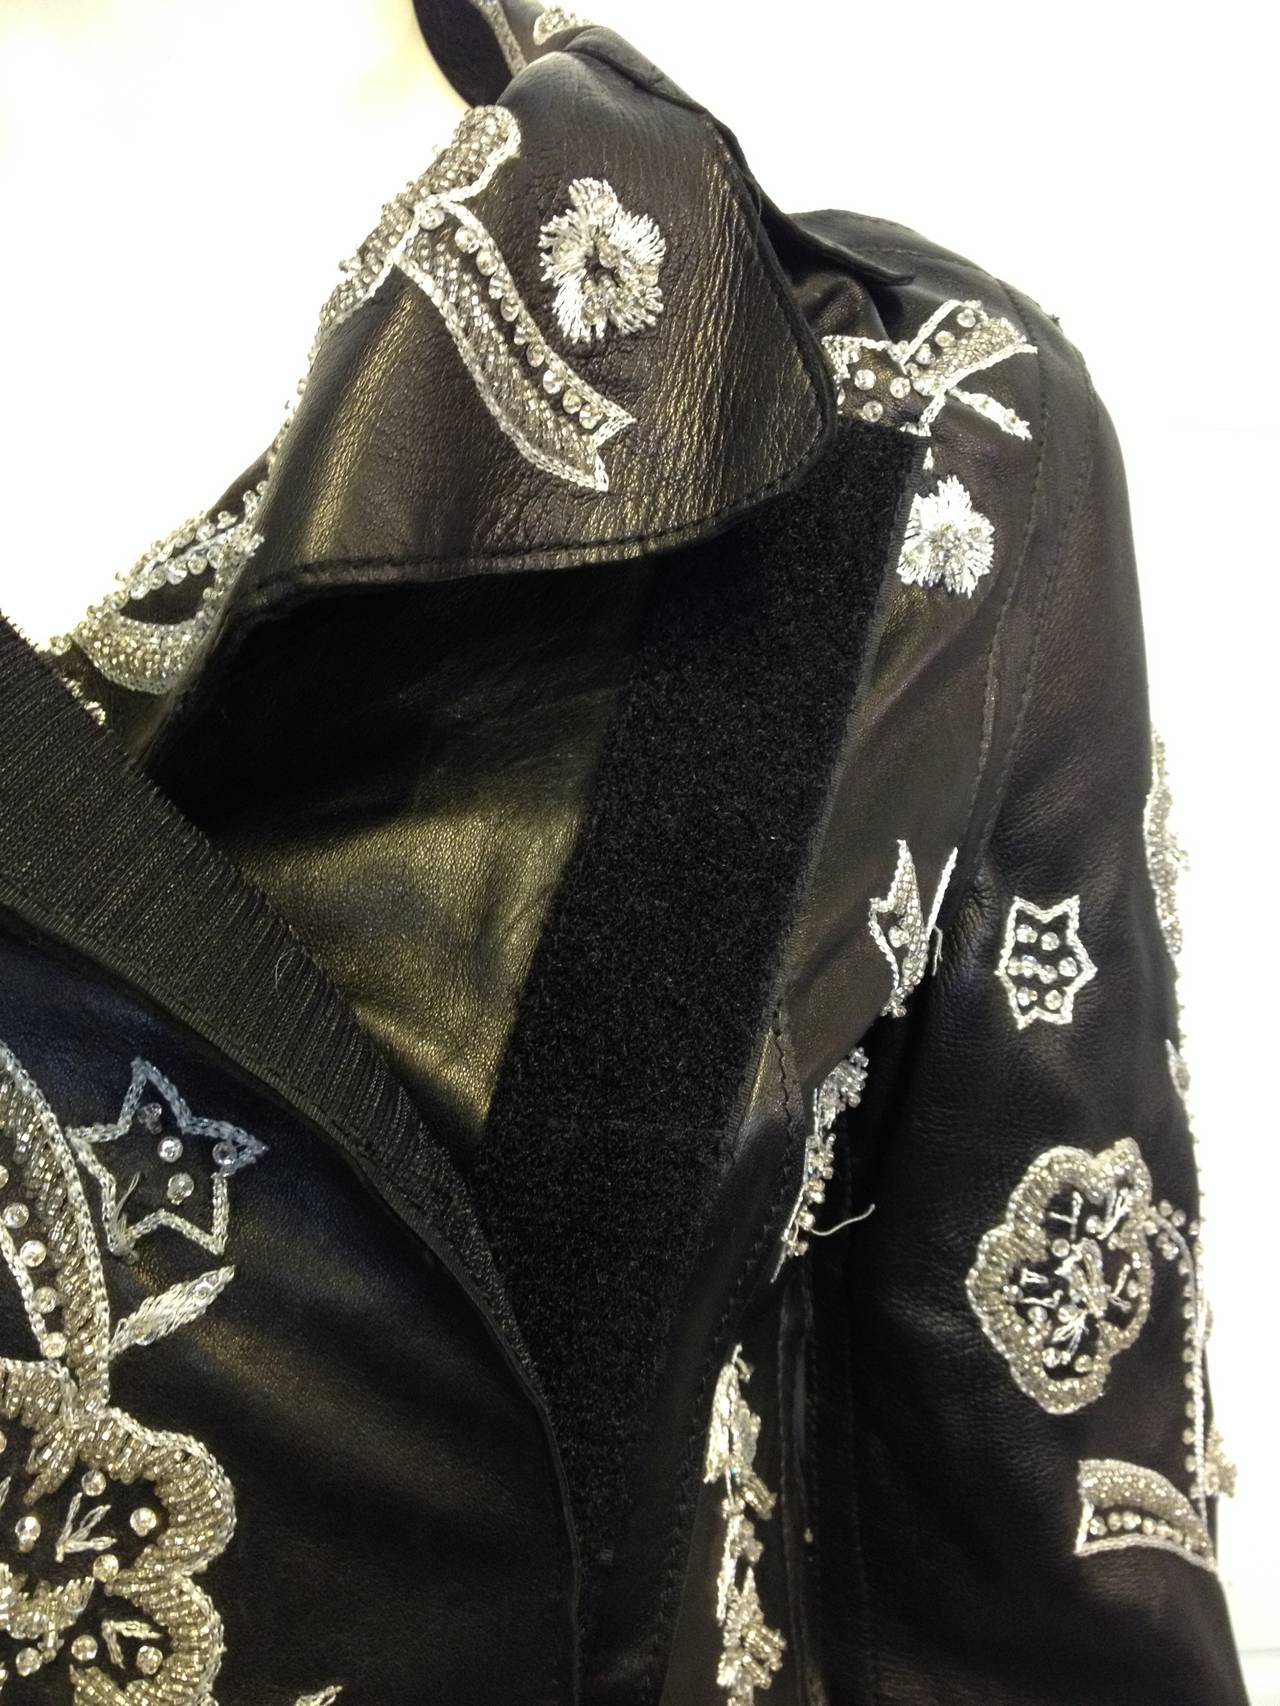 Dolce & Gabbana Black Leather Jacket with Silver Beading 5